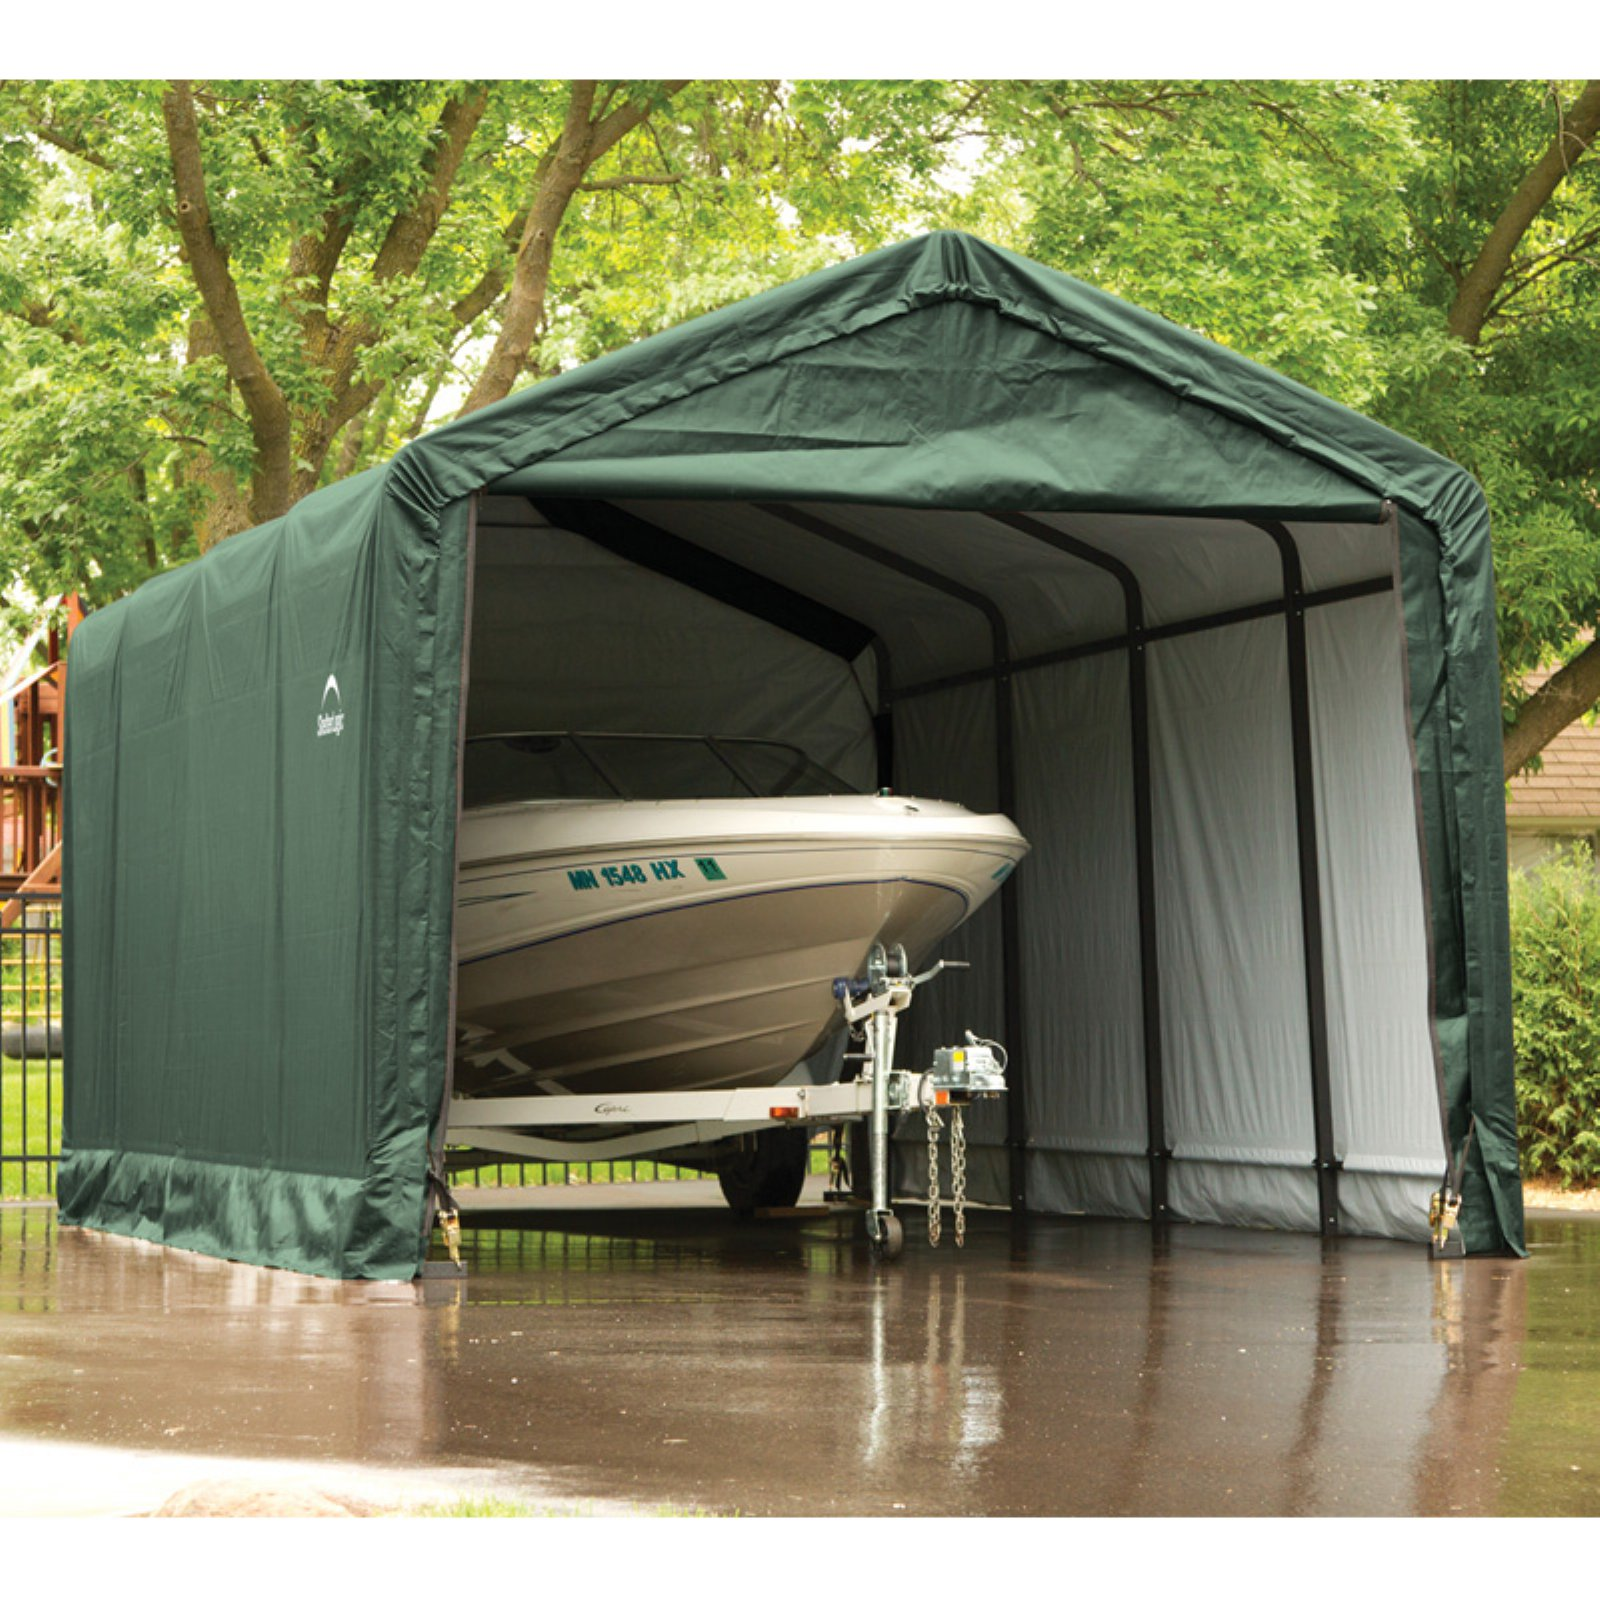 ShelterLogic ShelterTube 12' x 20' x 11' Peak Style Garage/Shelter, Green